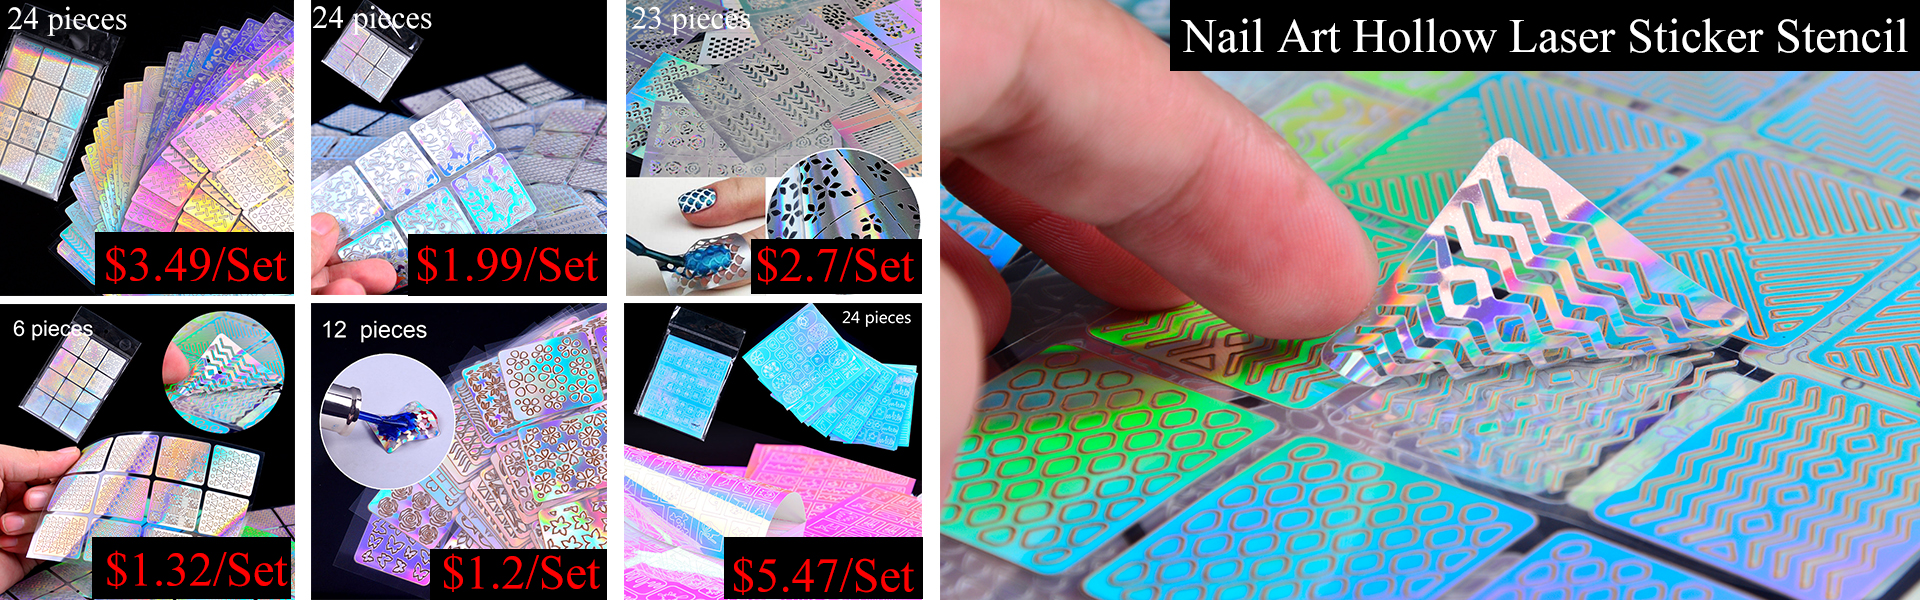 Judy Nail Art Store - Small Orders Online Store, Hot Selling and ...